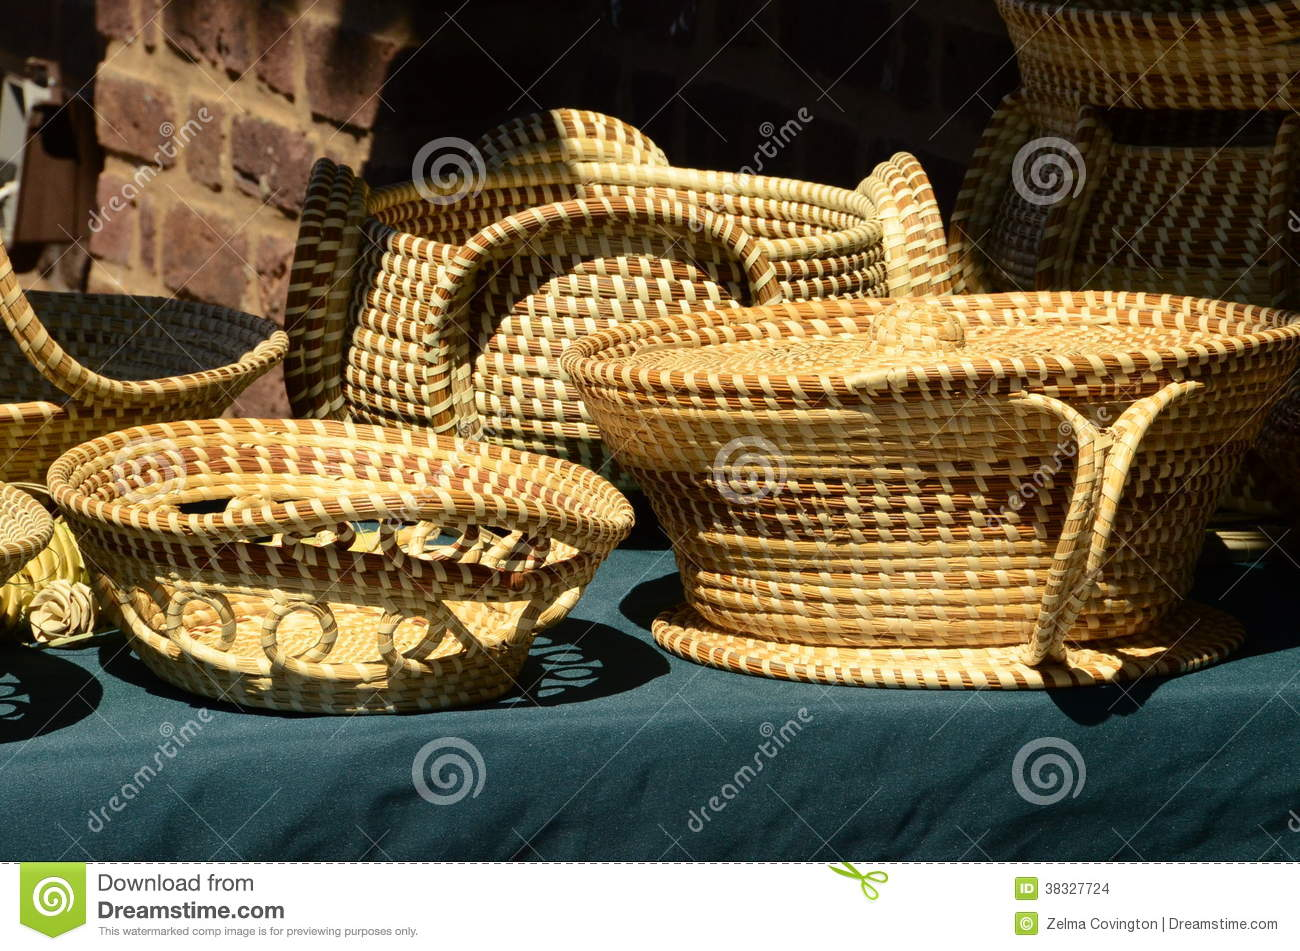 Handmade Baskets In South Carolina : Charleston south carolina sweetgrass baskets stock images